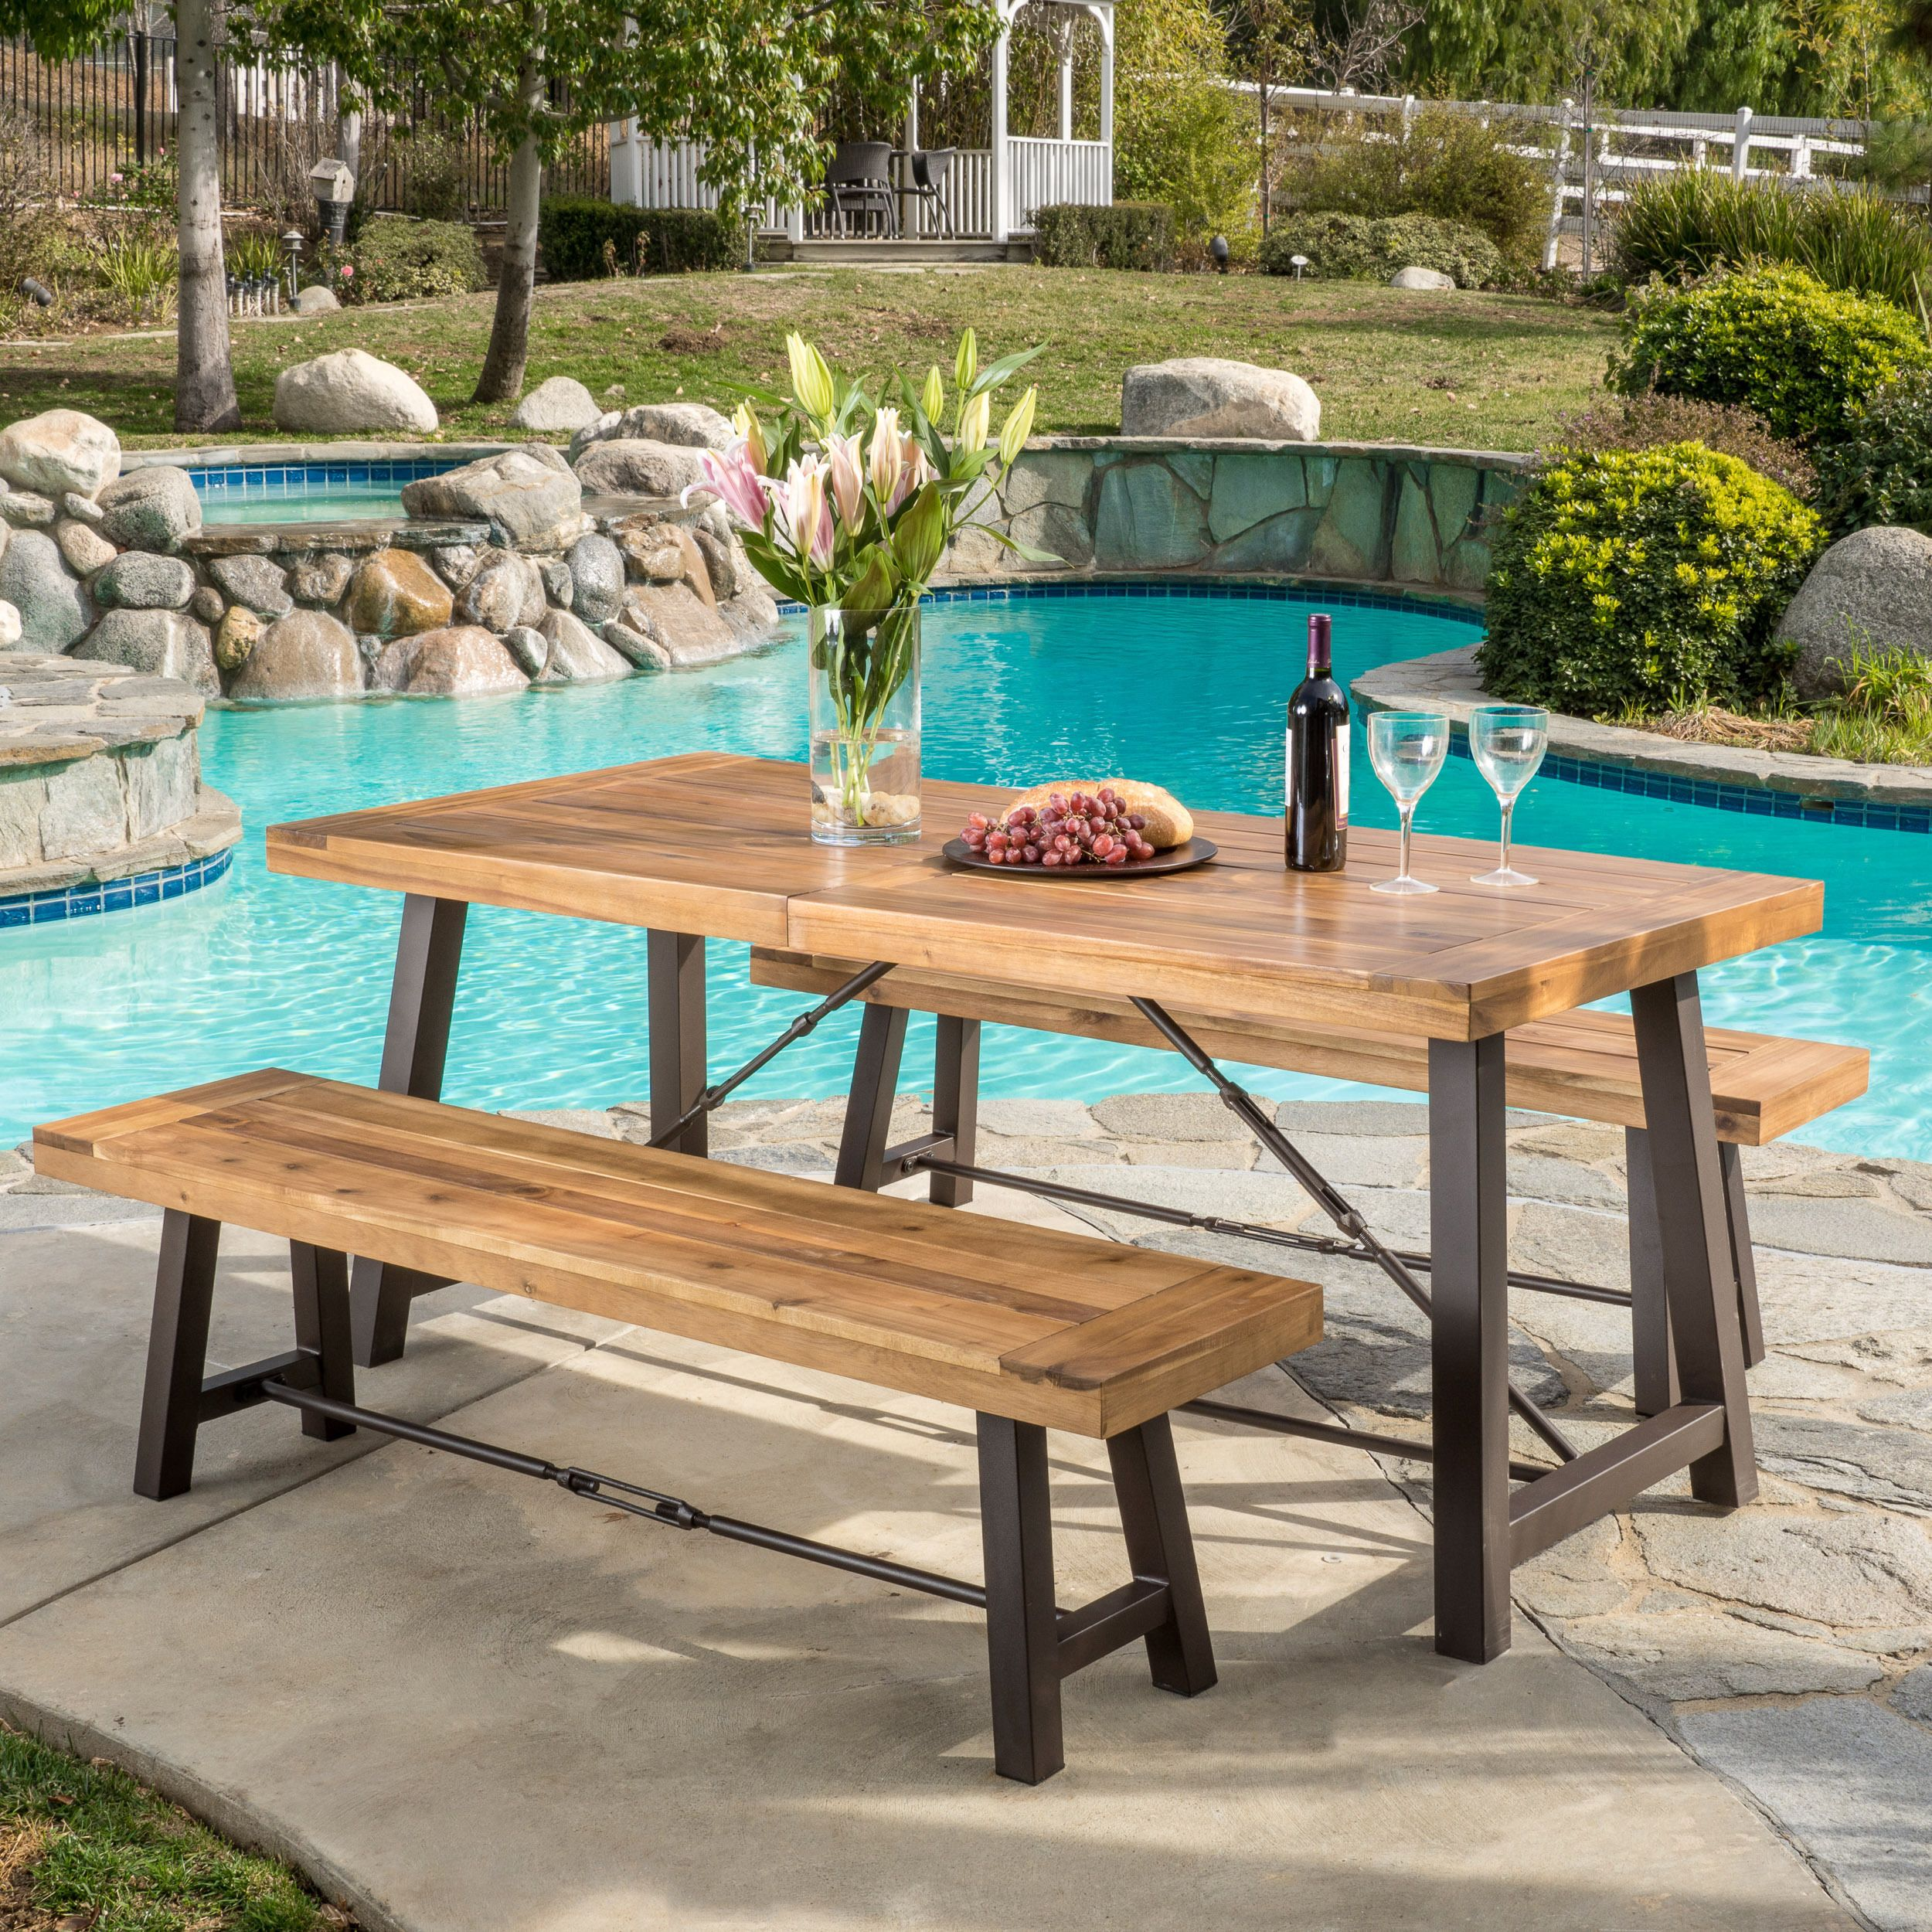 Outdoor puerto acacia wood 3 piece picnic dining set by christopher knight home brown with grey finish size 3 piece sets patio furniture